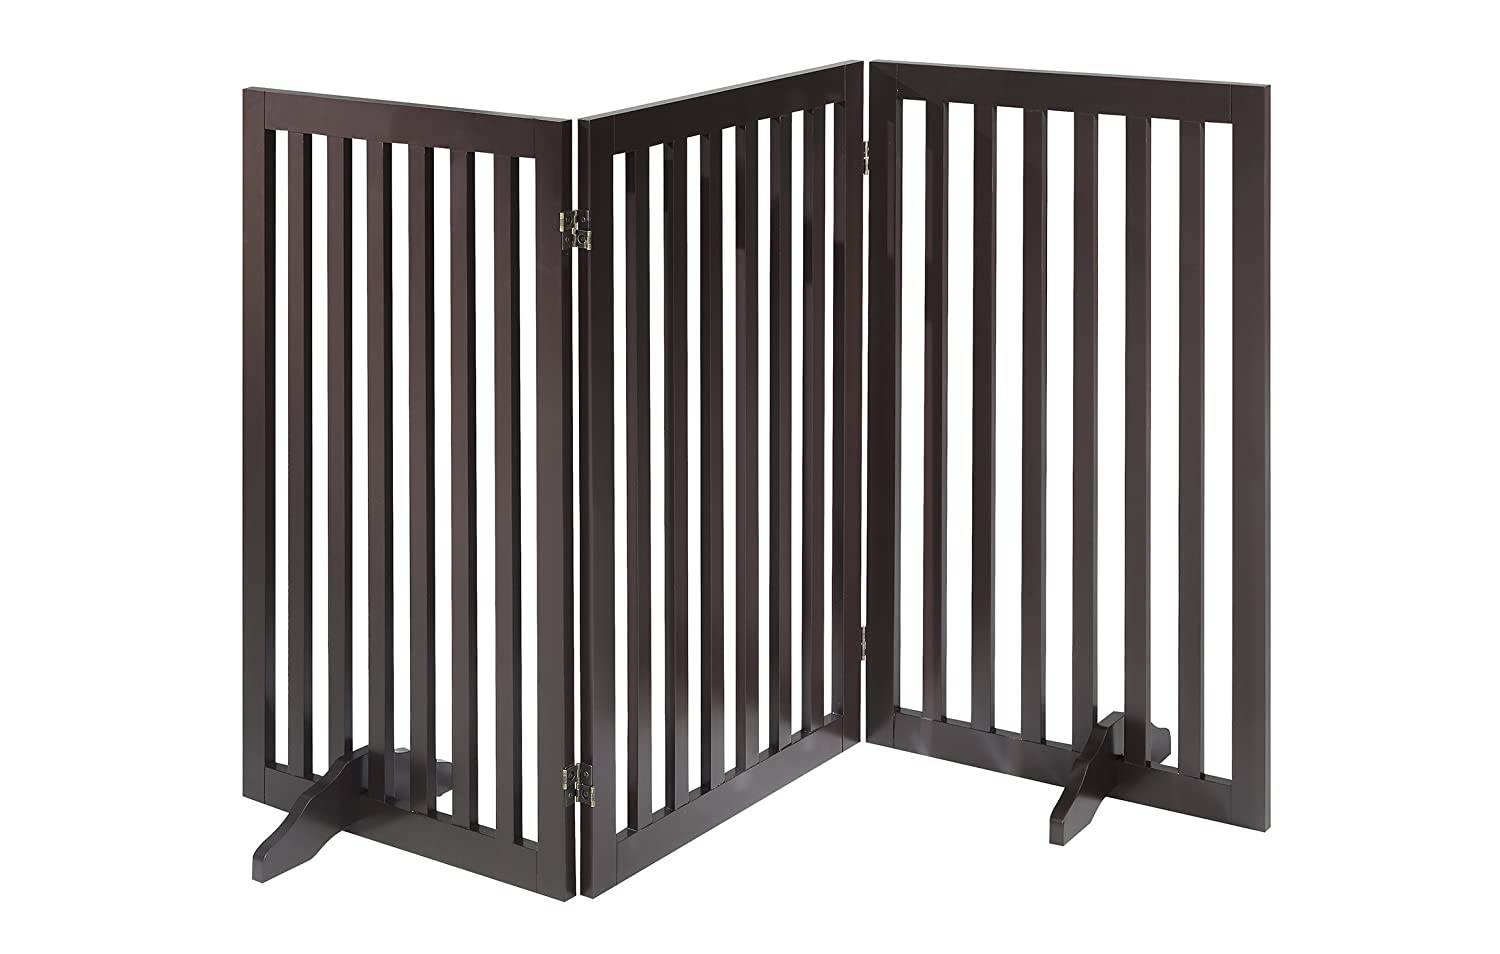 Total Win - Freestanding 36 Tall Dog Gate w/ Support Feet (Espresso) | Up to 80 Wide | Assembly-free | Sturdy Wooden Structure | Foldable Design